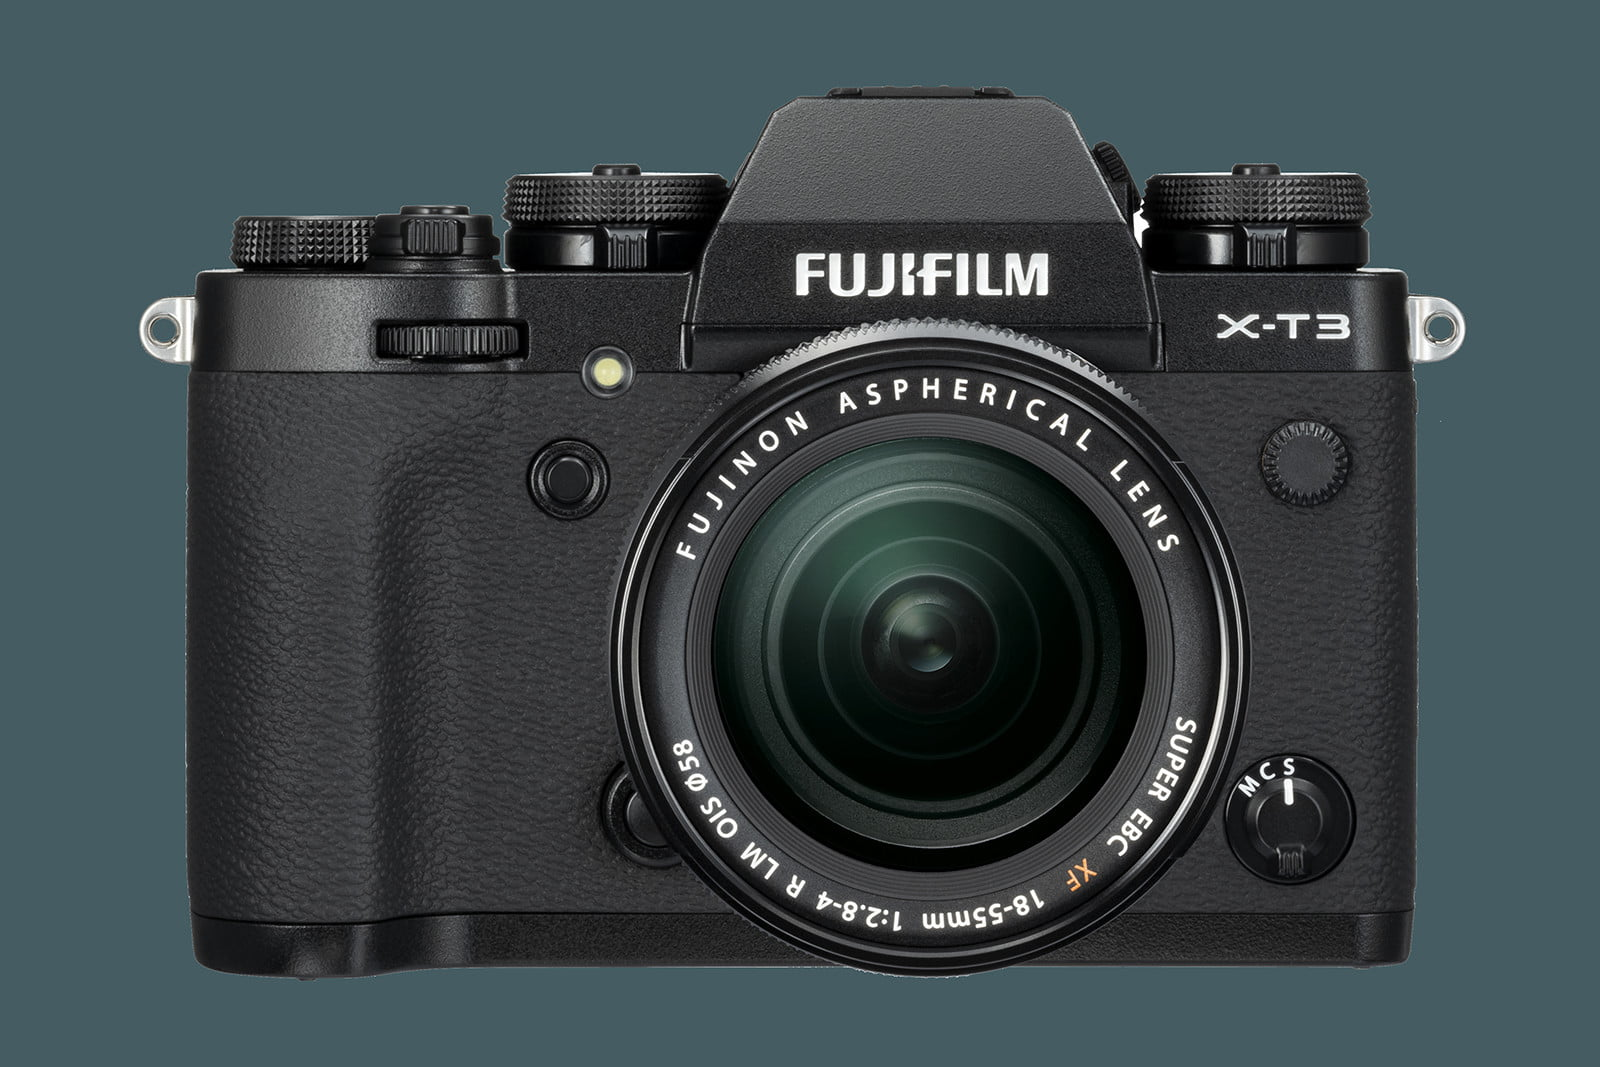 Fujifilm Unveils X-T3 Mirrorless Camera with New Sensor and